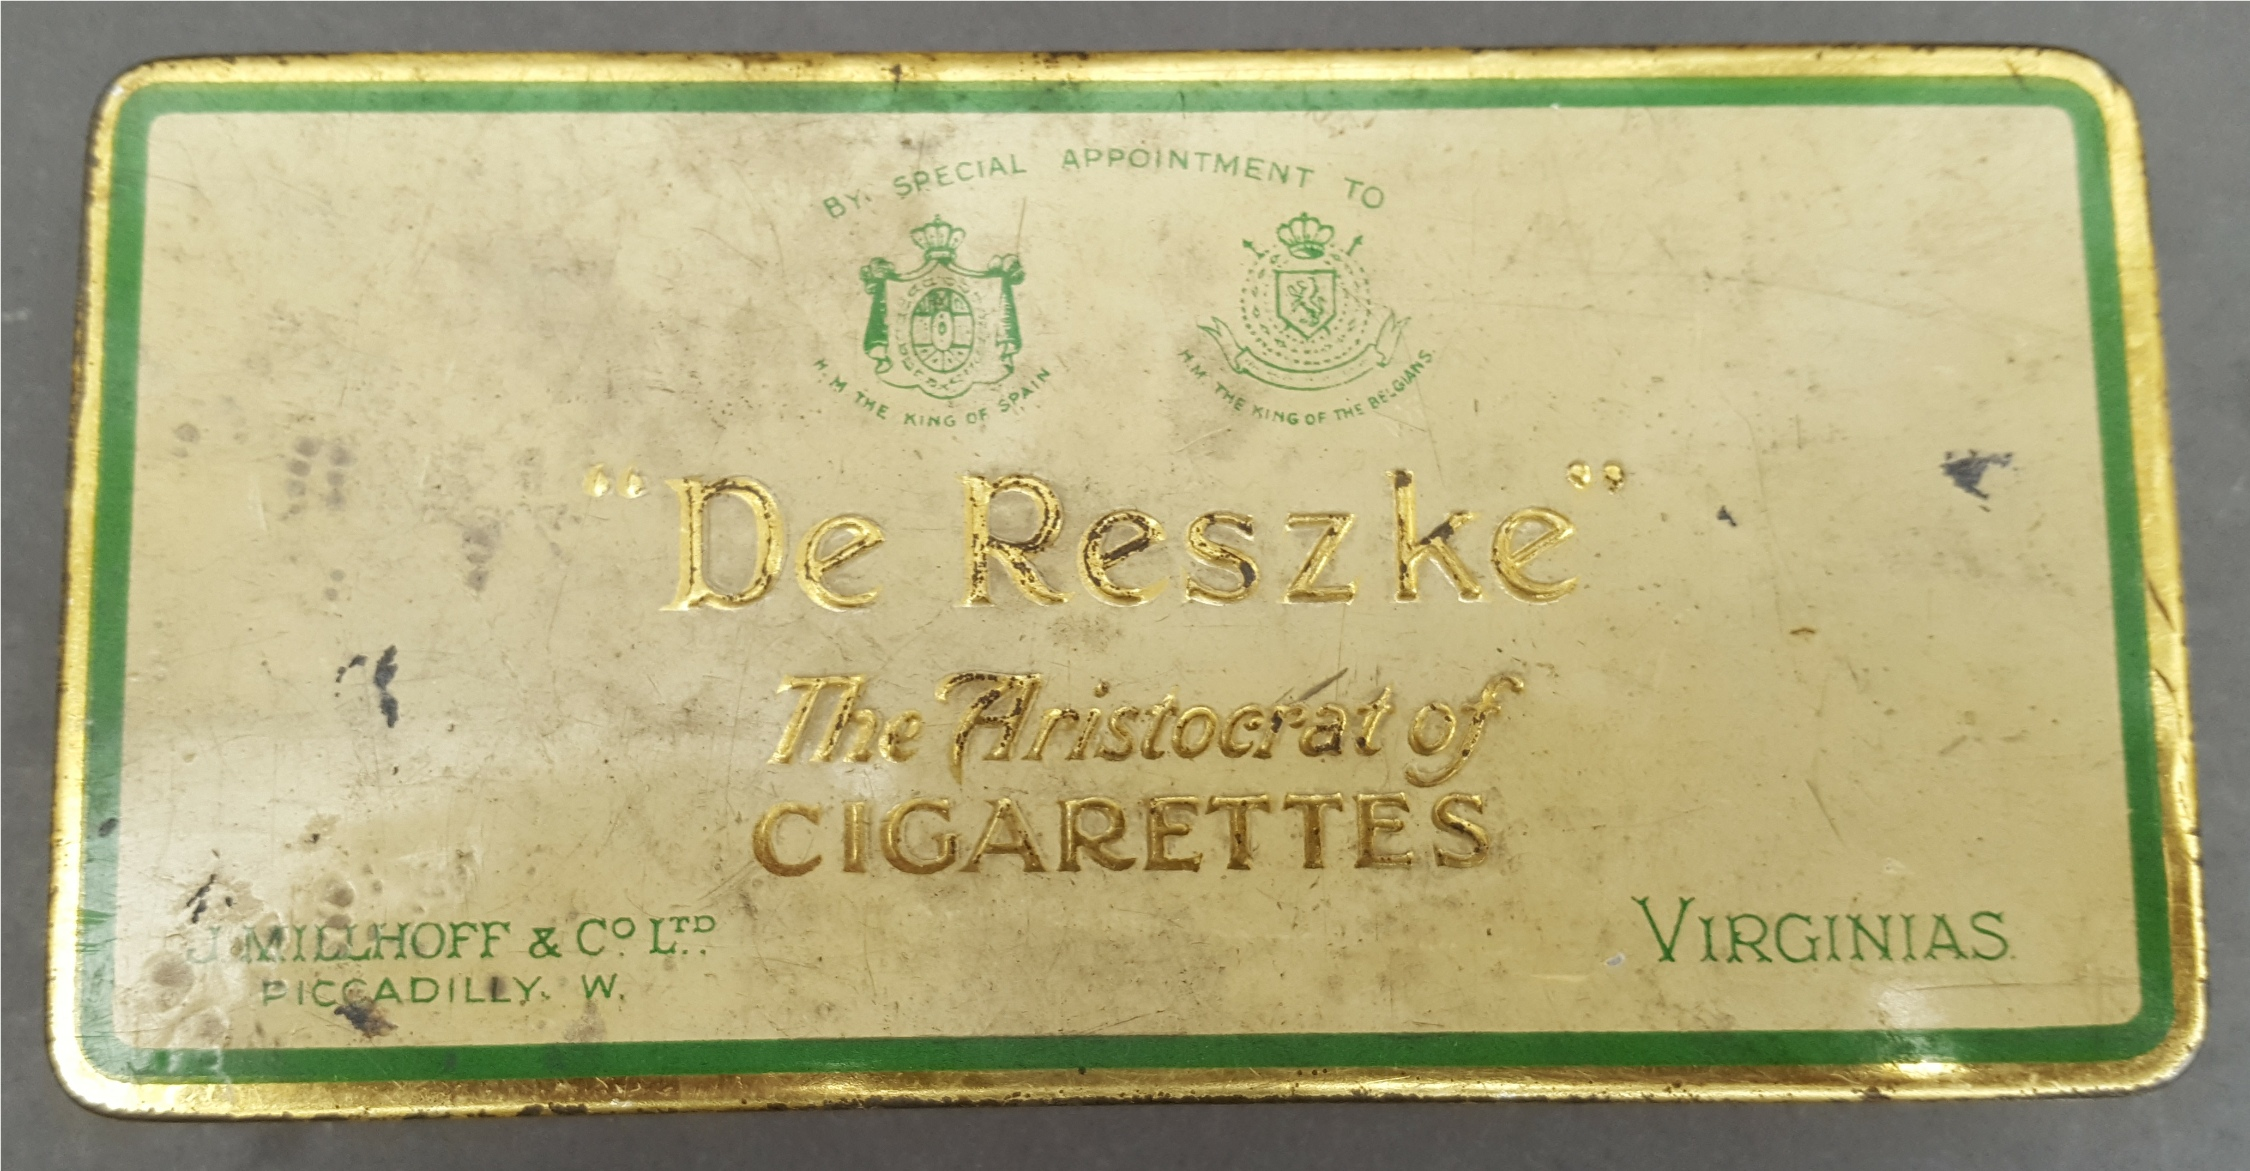 Lot 45 - Antique Vintage Collection of 150 plus Cigarette Cards in a De Reszke Cigarette Tin